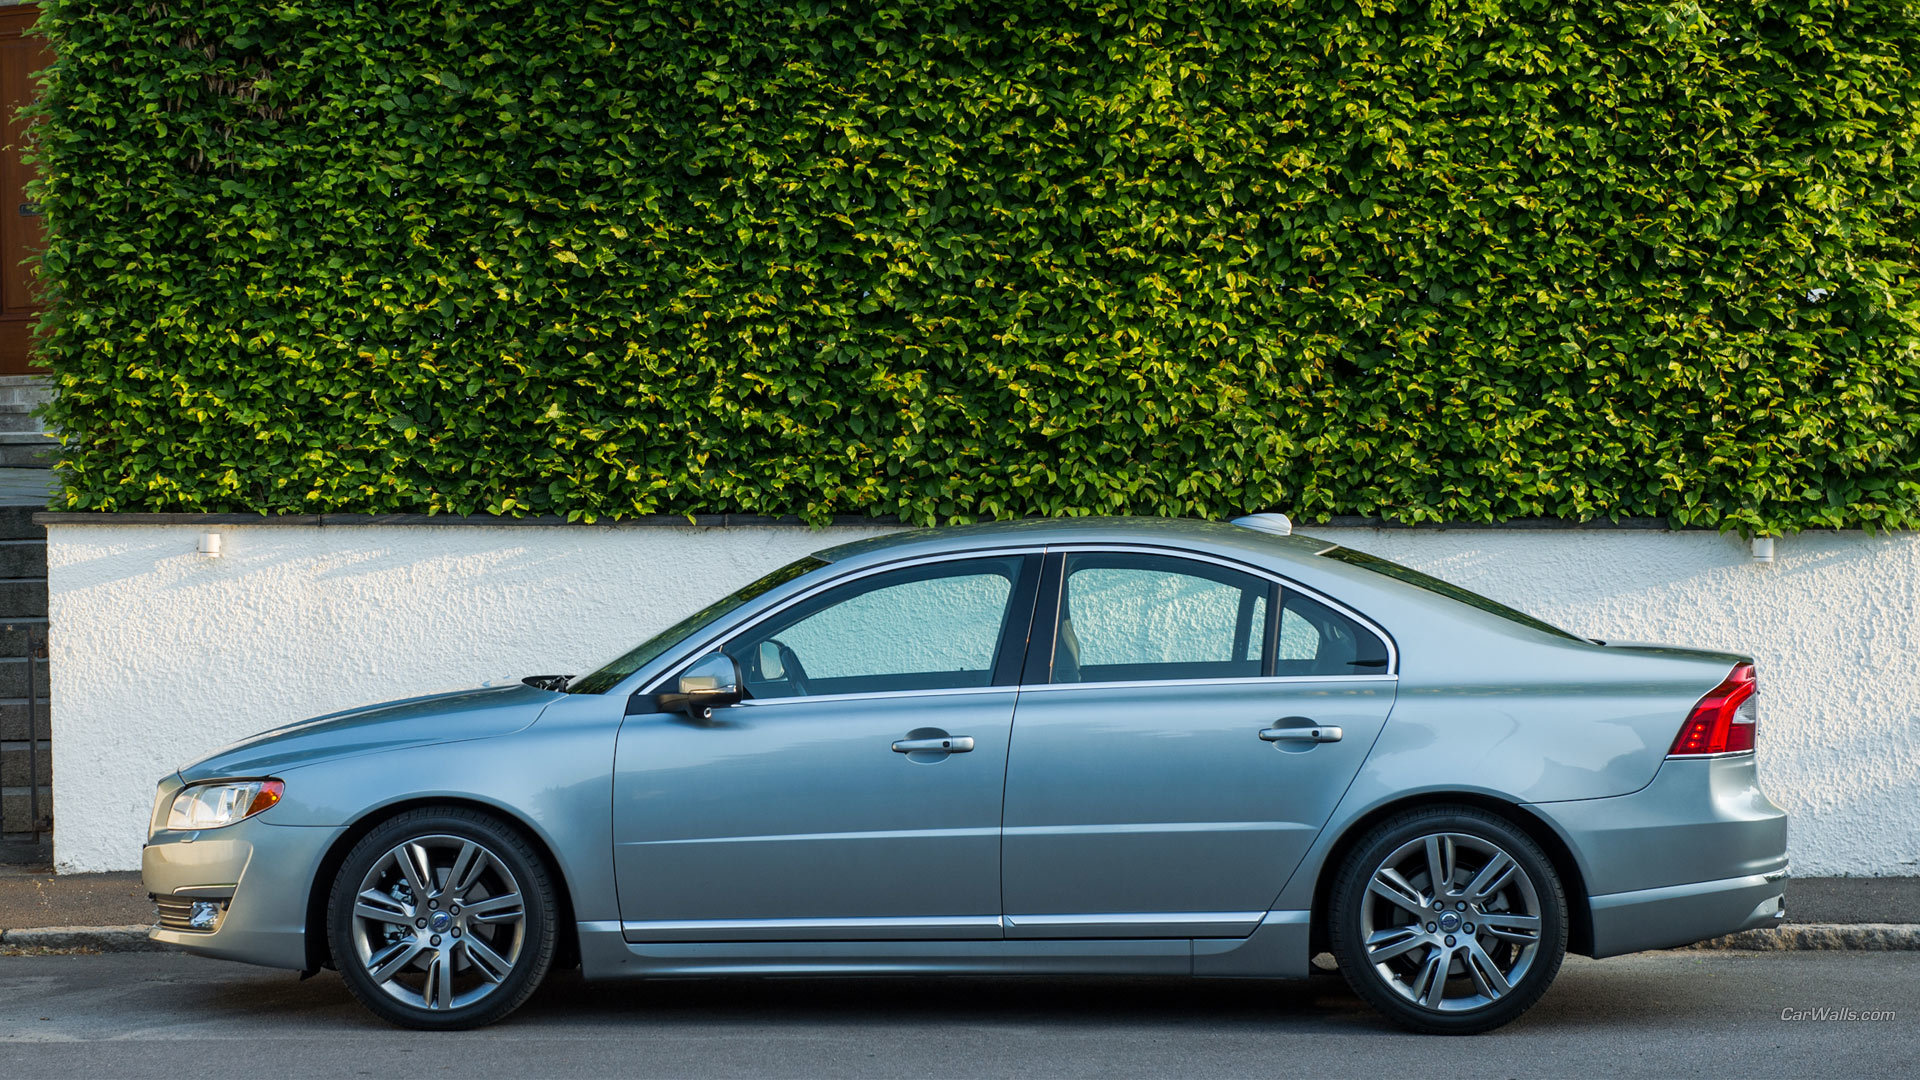 High resolution Volvo S80 full hd 1080p wallpaper ID:6914 for desktop